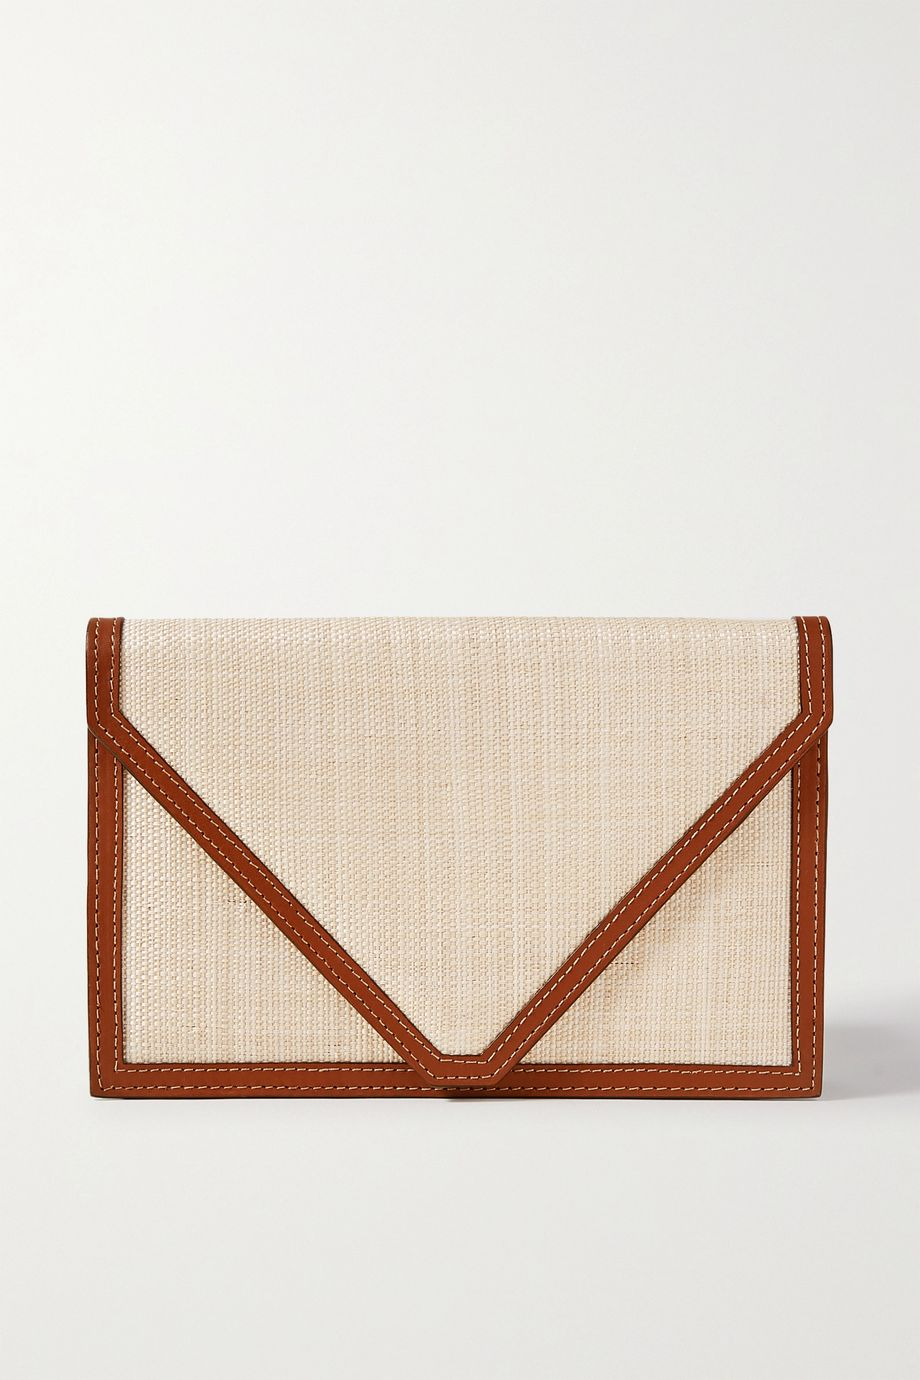 Hunting Season Envelope leather-trimmed raffia clutch